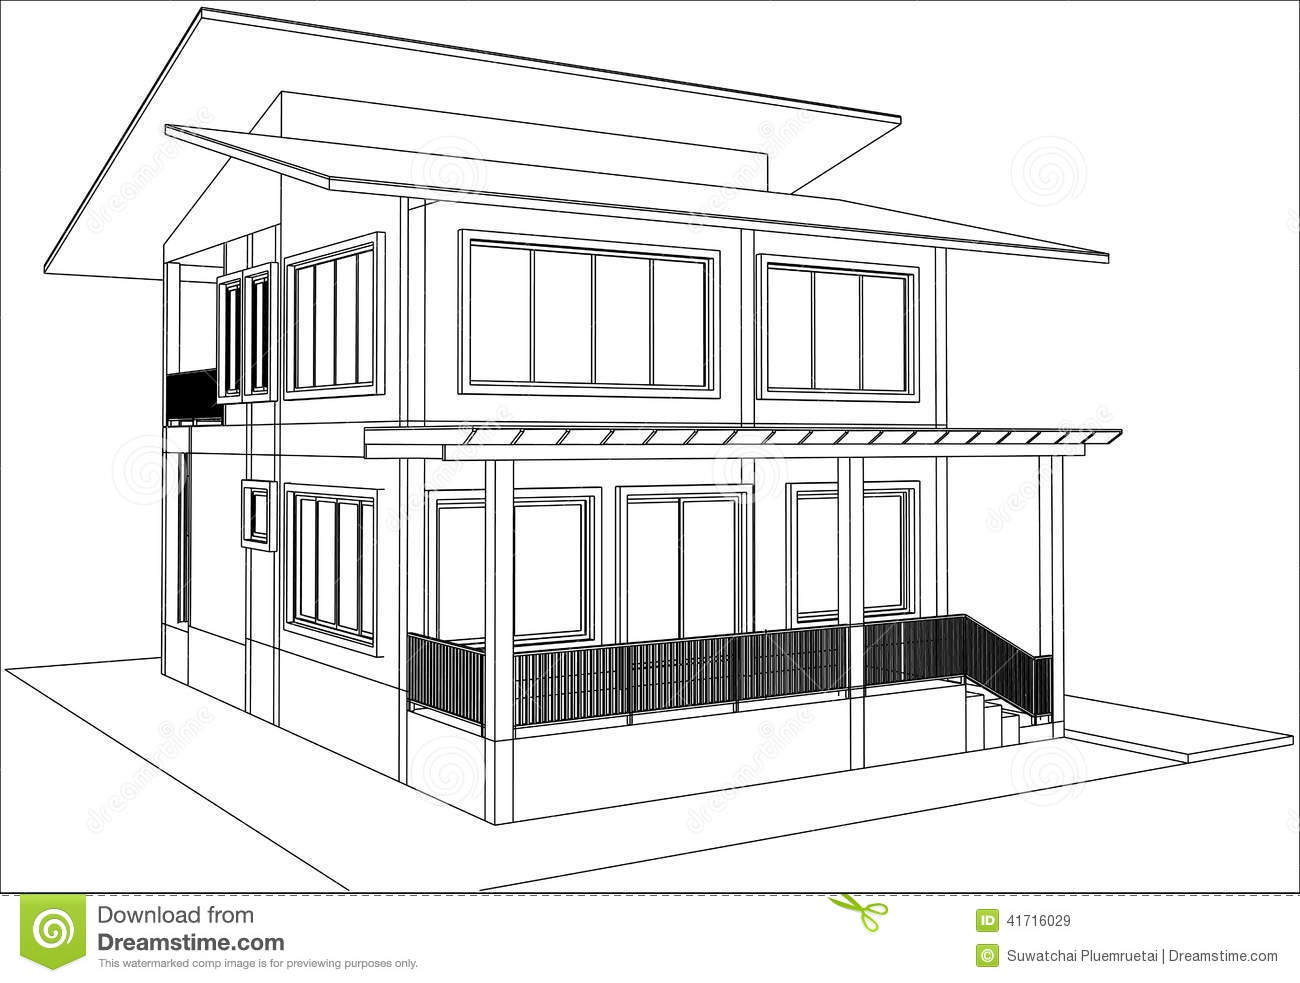 sketch design of housevector architecture drawing - House Sketch Design